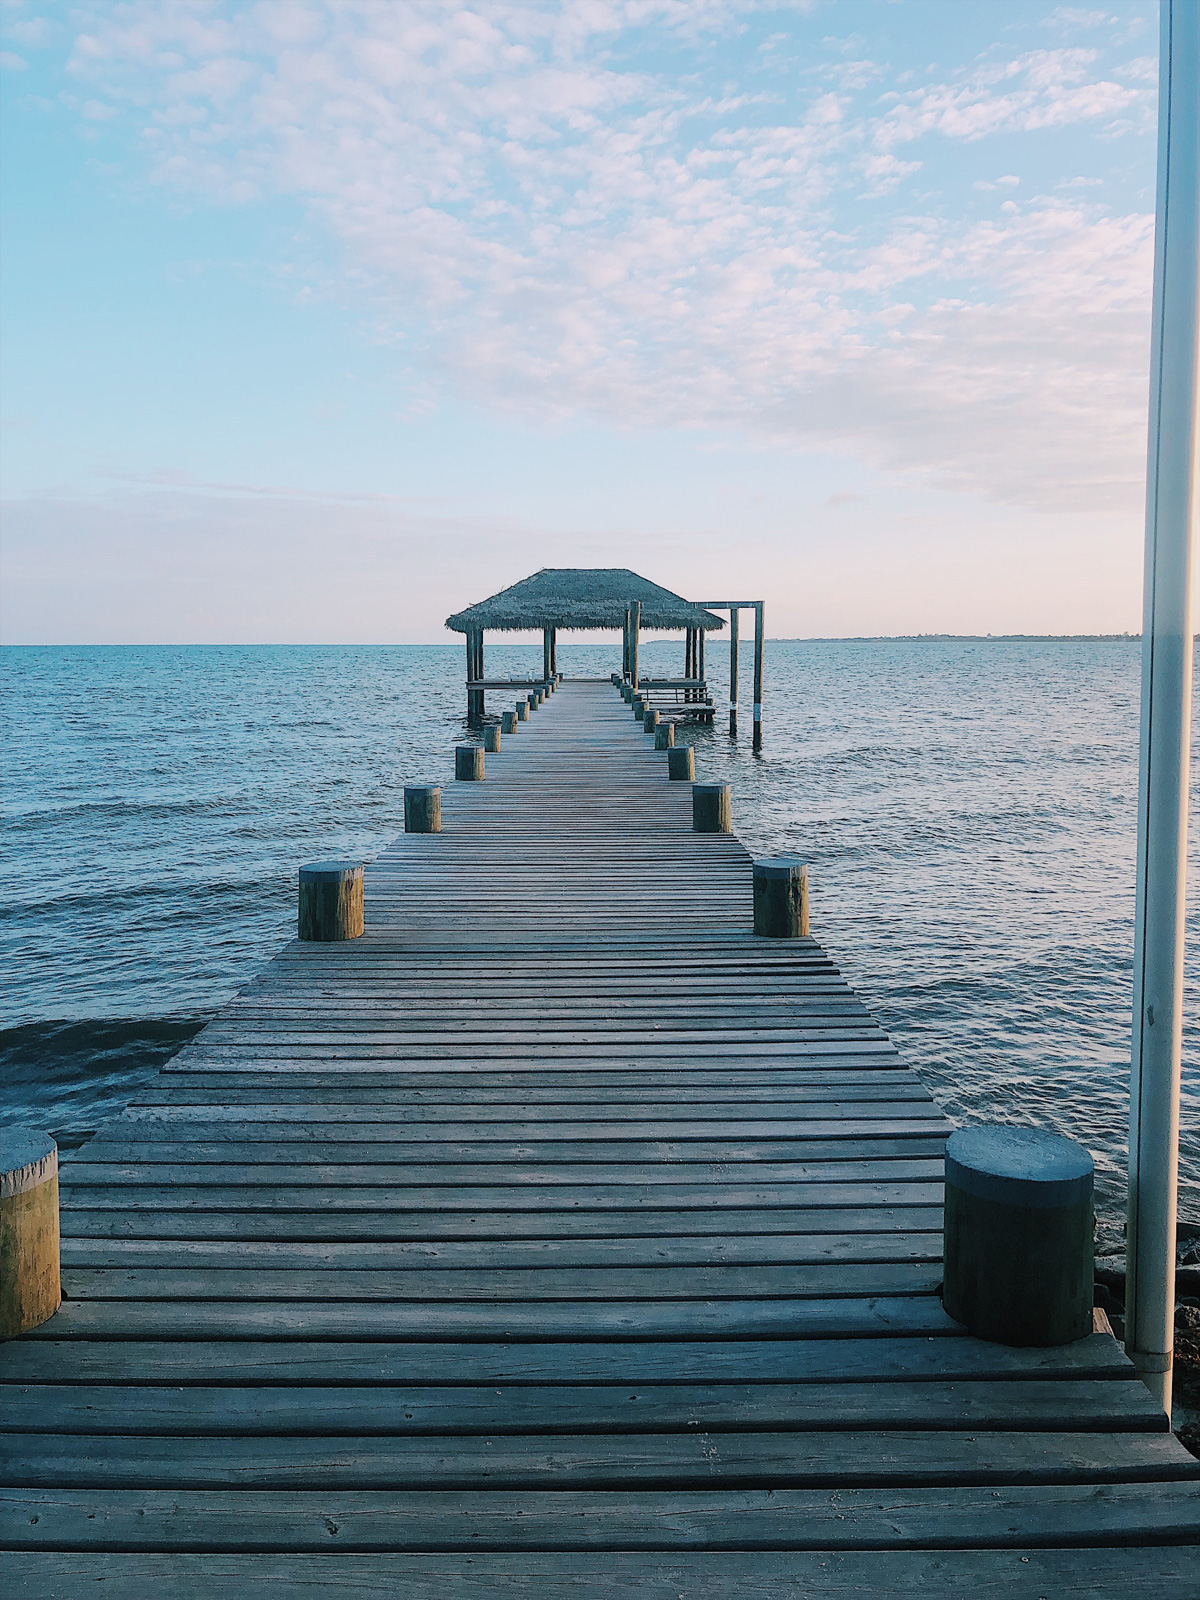 view of a dock going out to the ocean